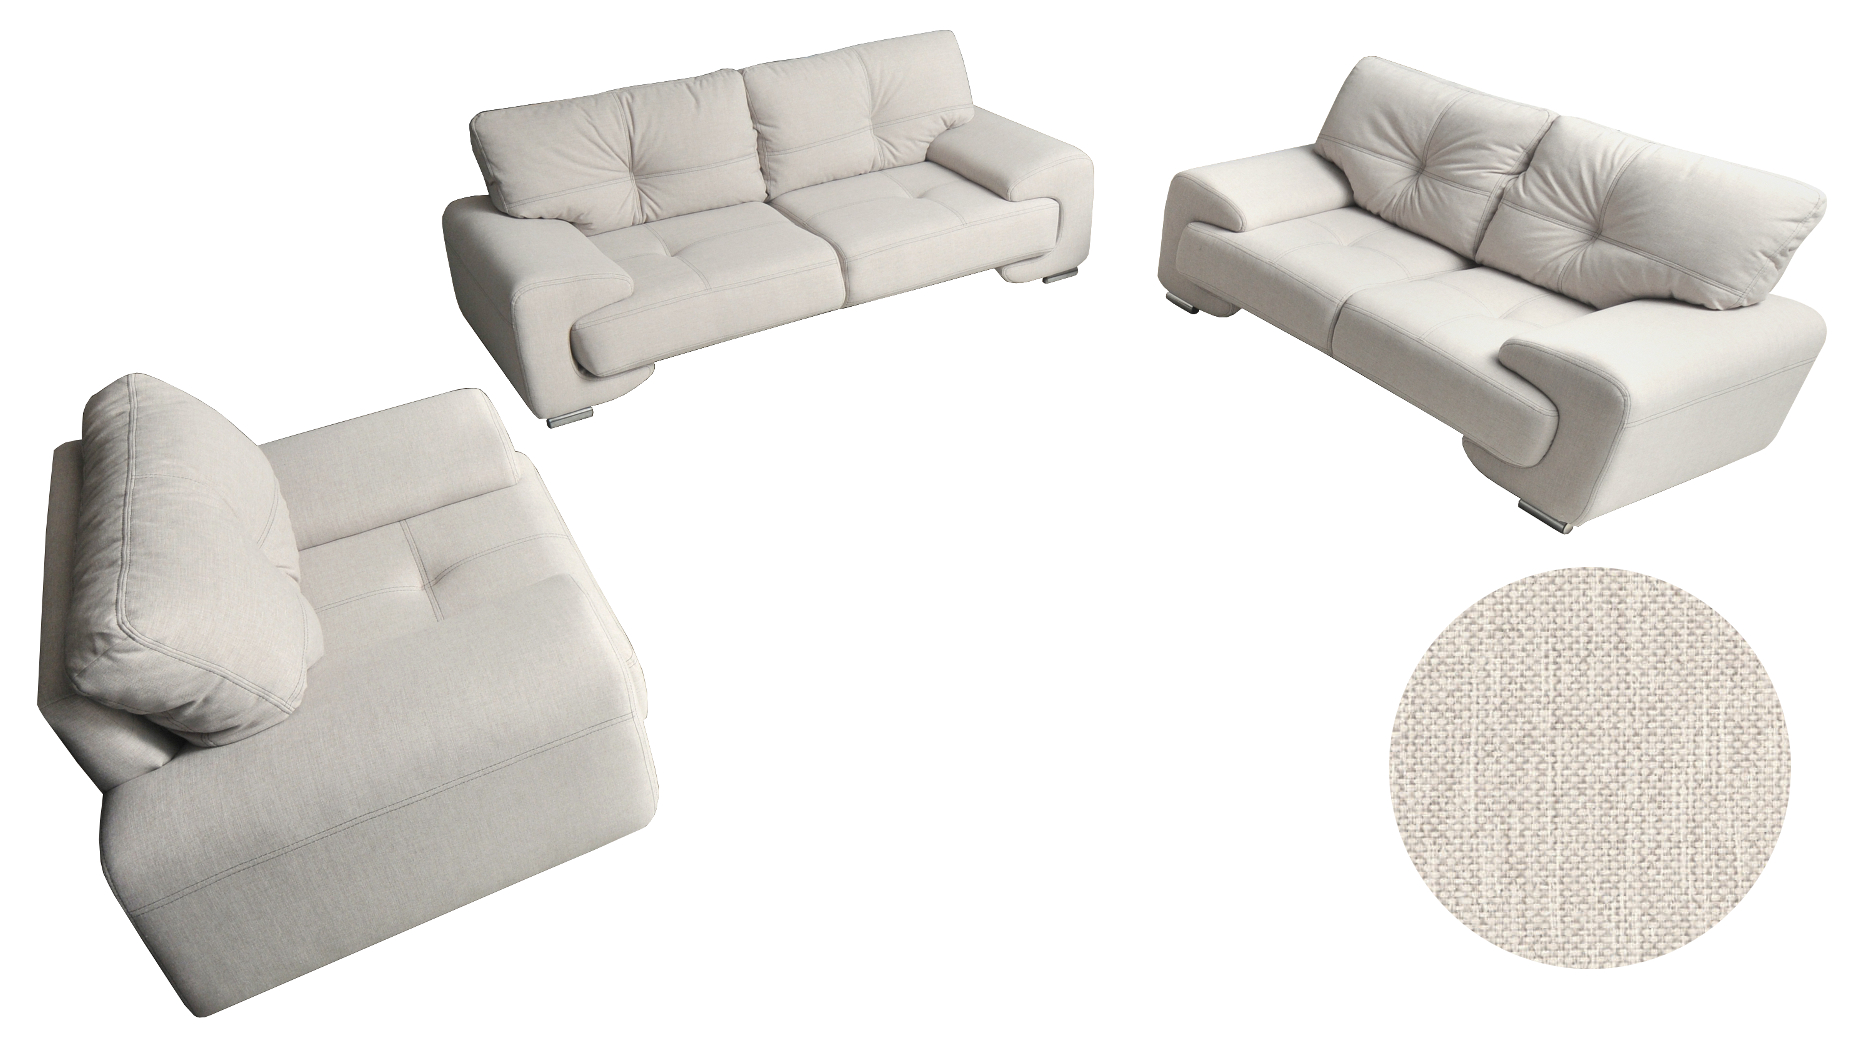 Couch 3er 2er Sessel Sofagarnitur Sofa Set Couch 3er 2er Sessel 3 2 1